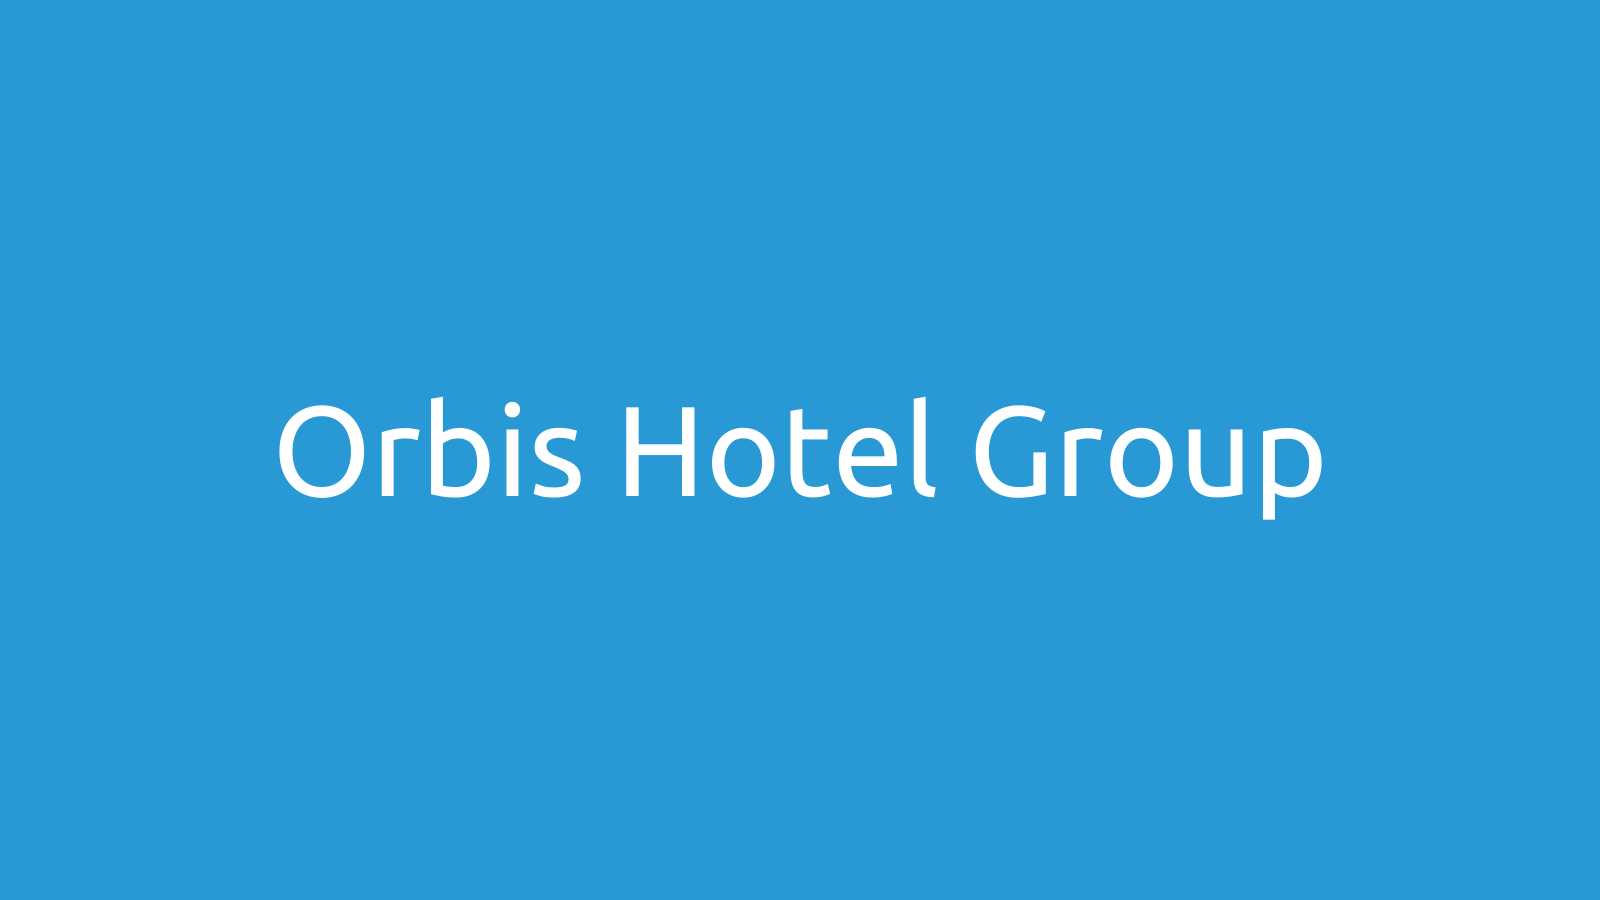 Orbis Hotel Group